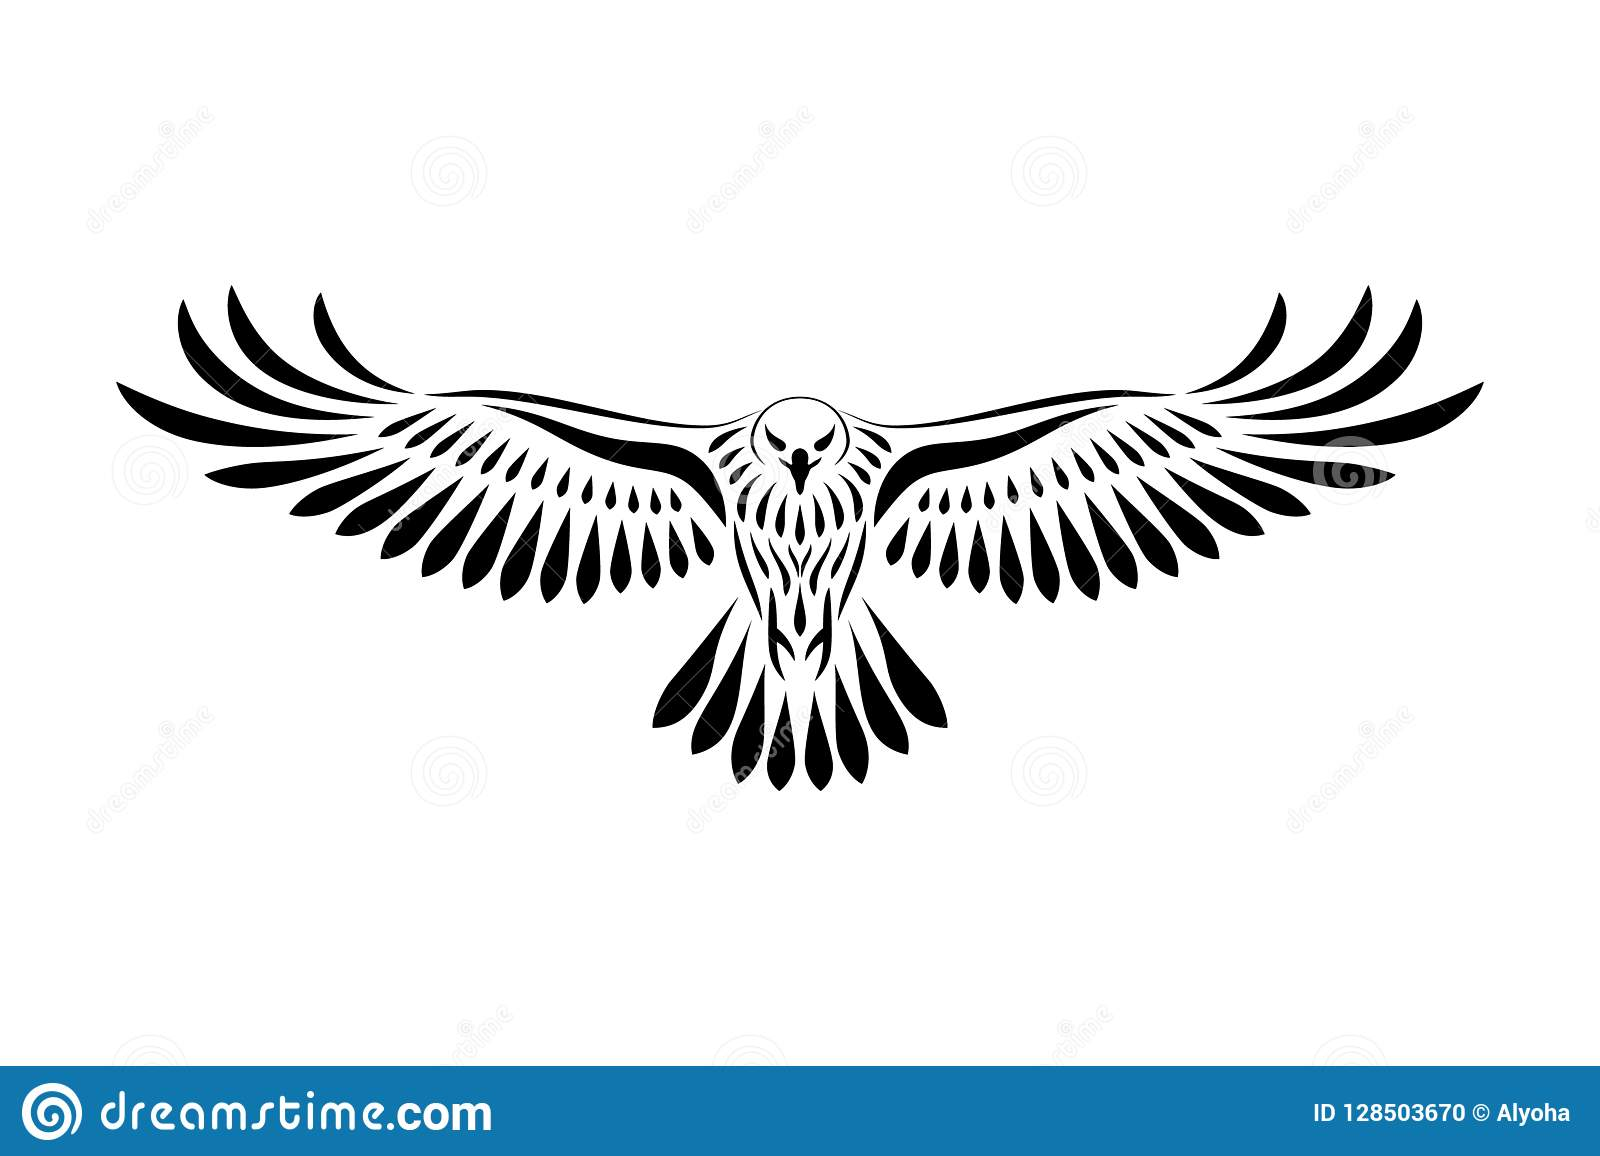 Engraving Of Stylized Hawk On White Background Stock Vector